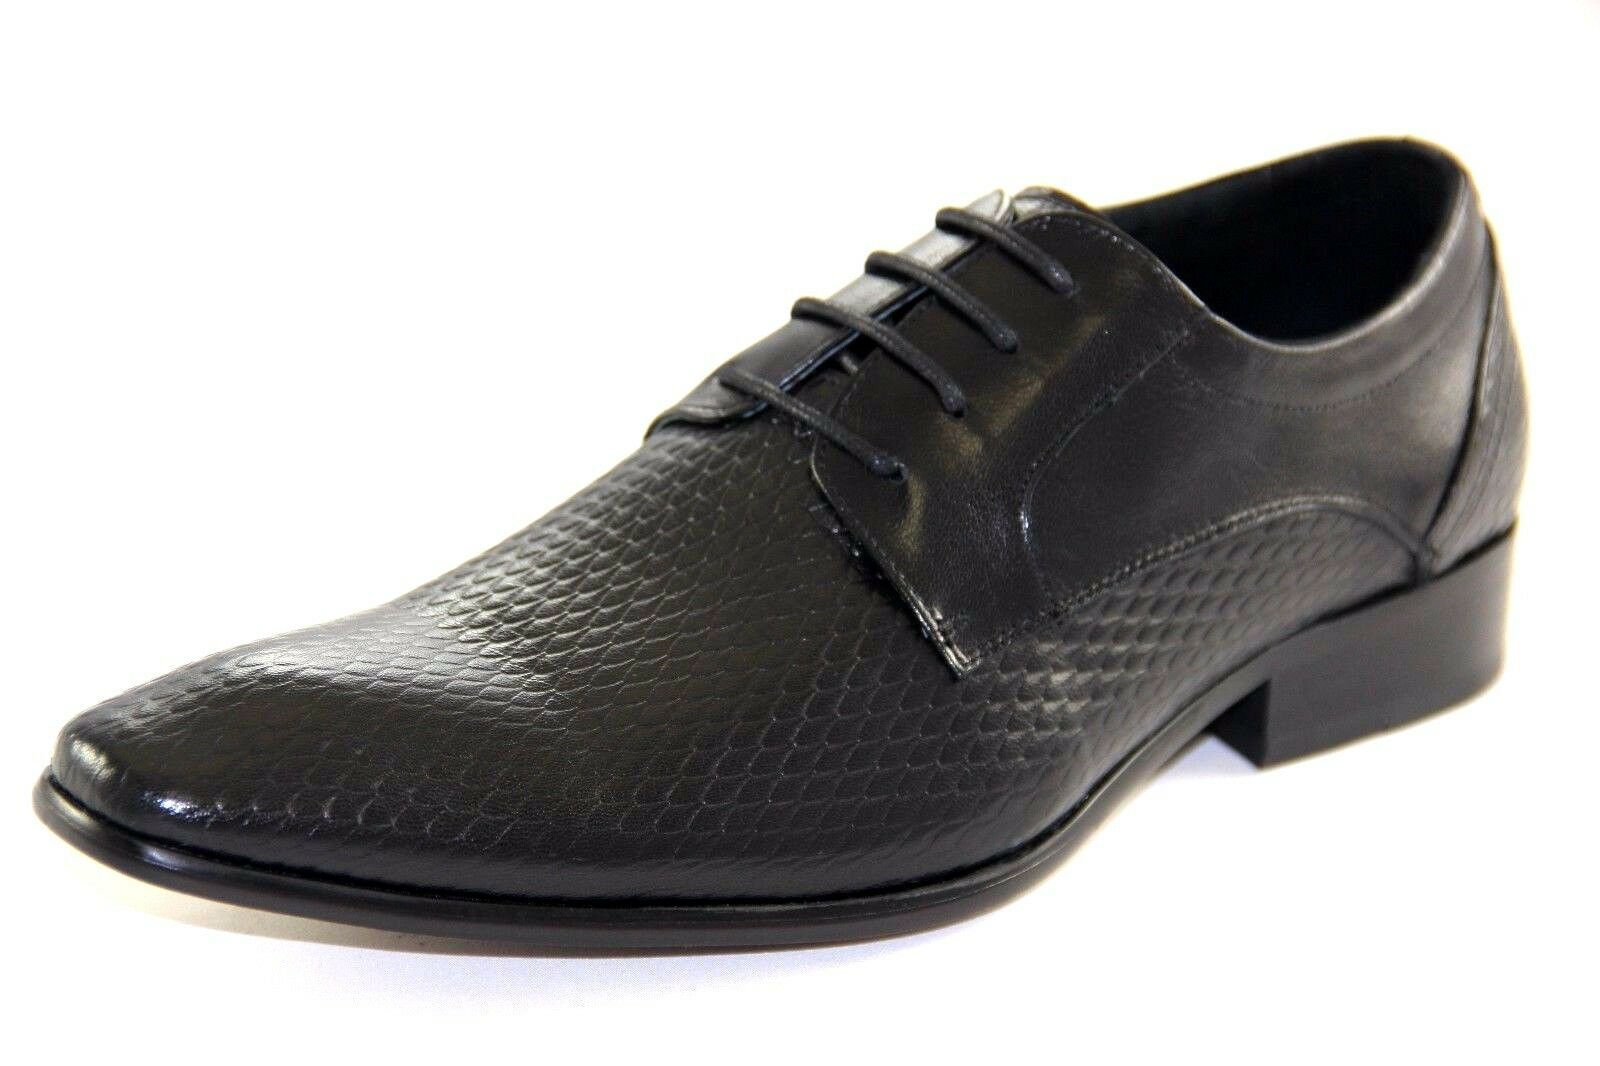 SALO NEW YORK Men's Black Leather Oxford new shoes shoes Style 968-7092